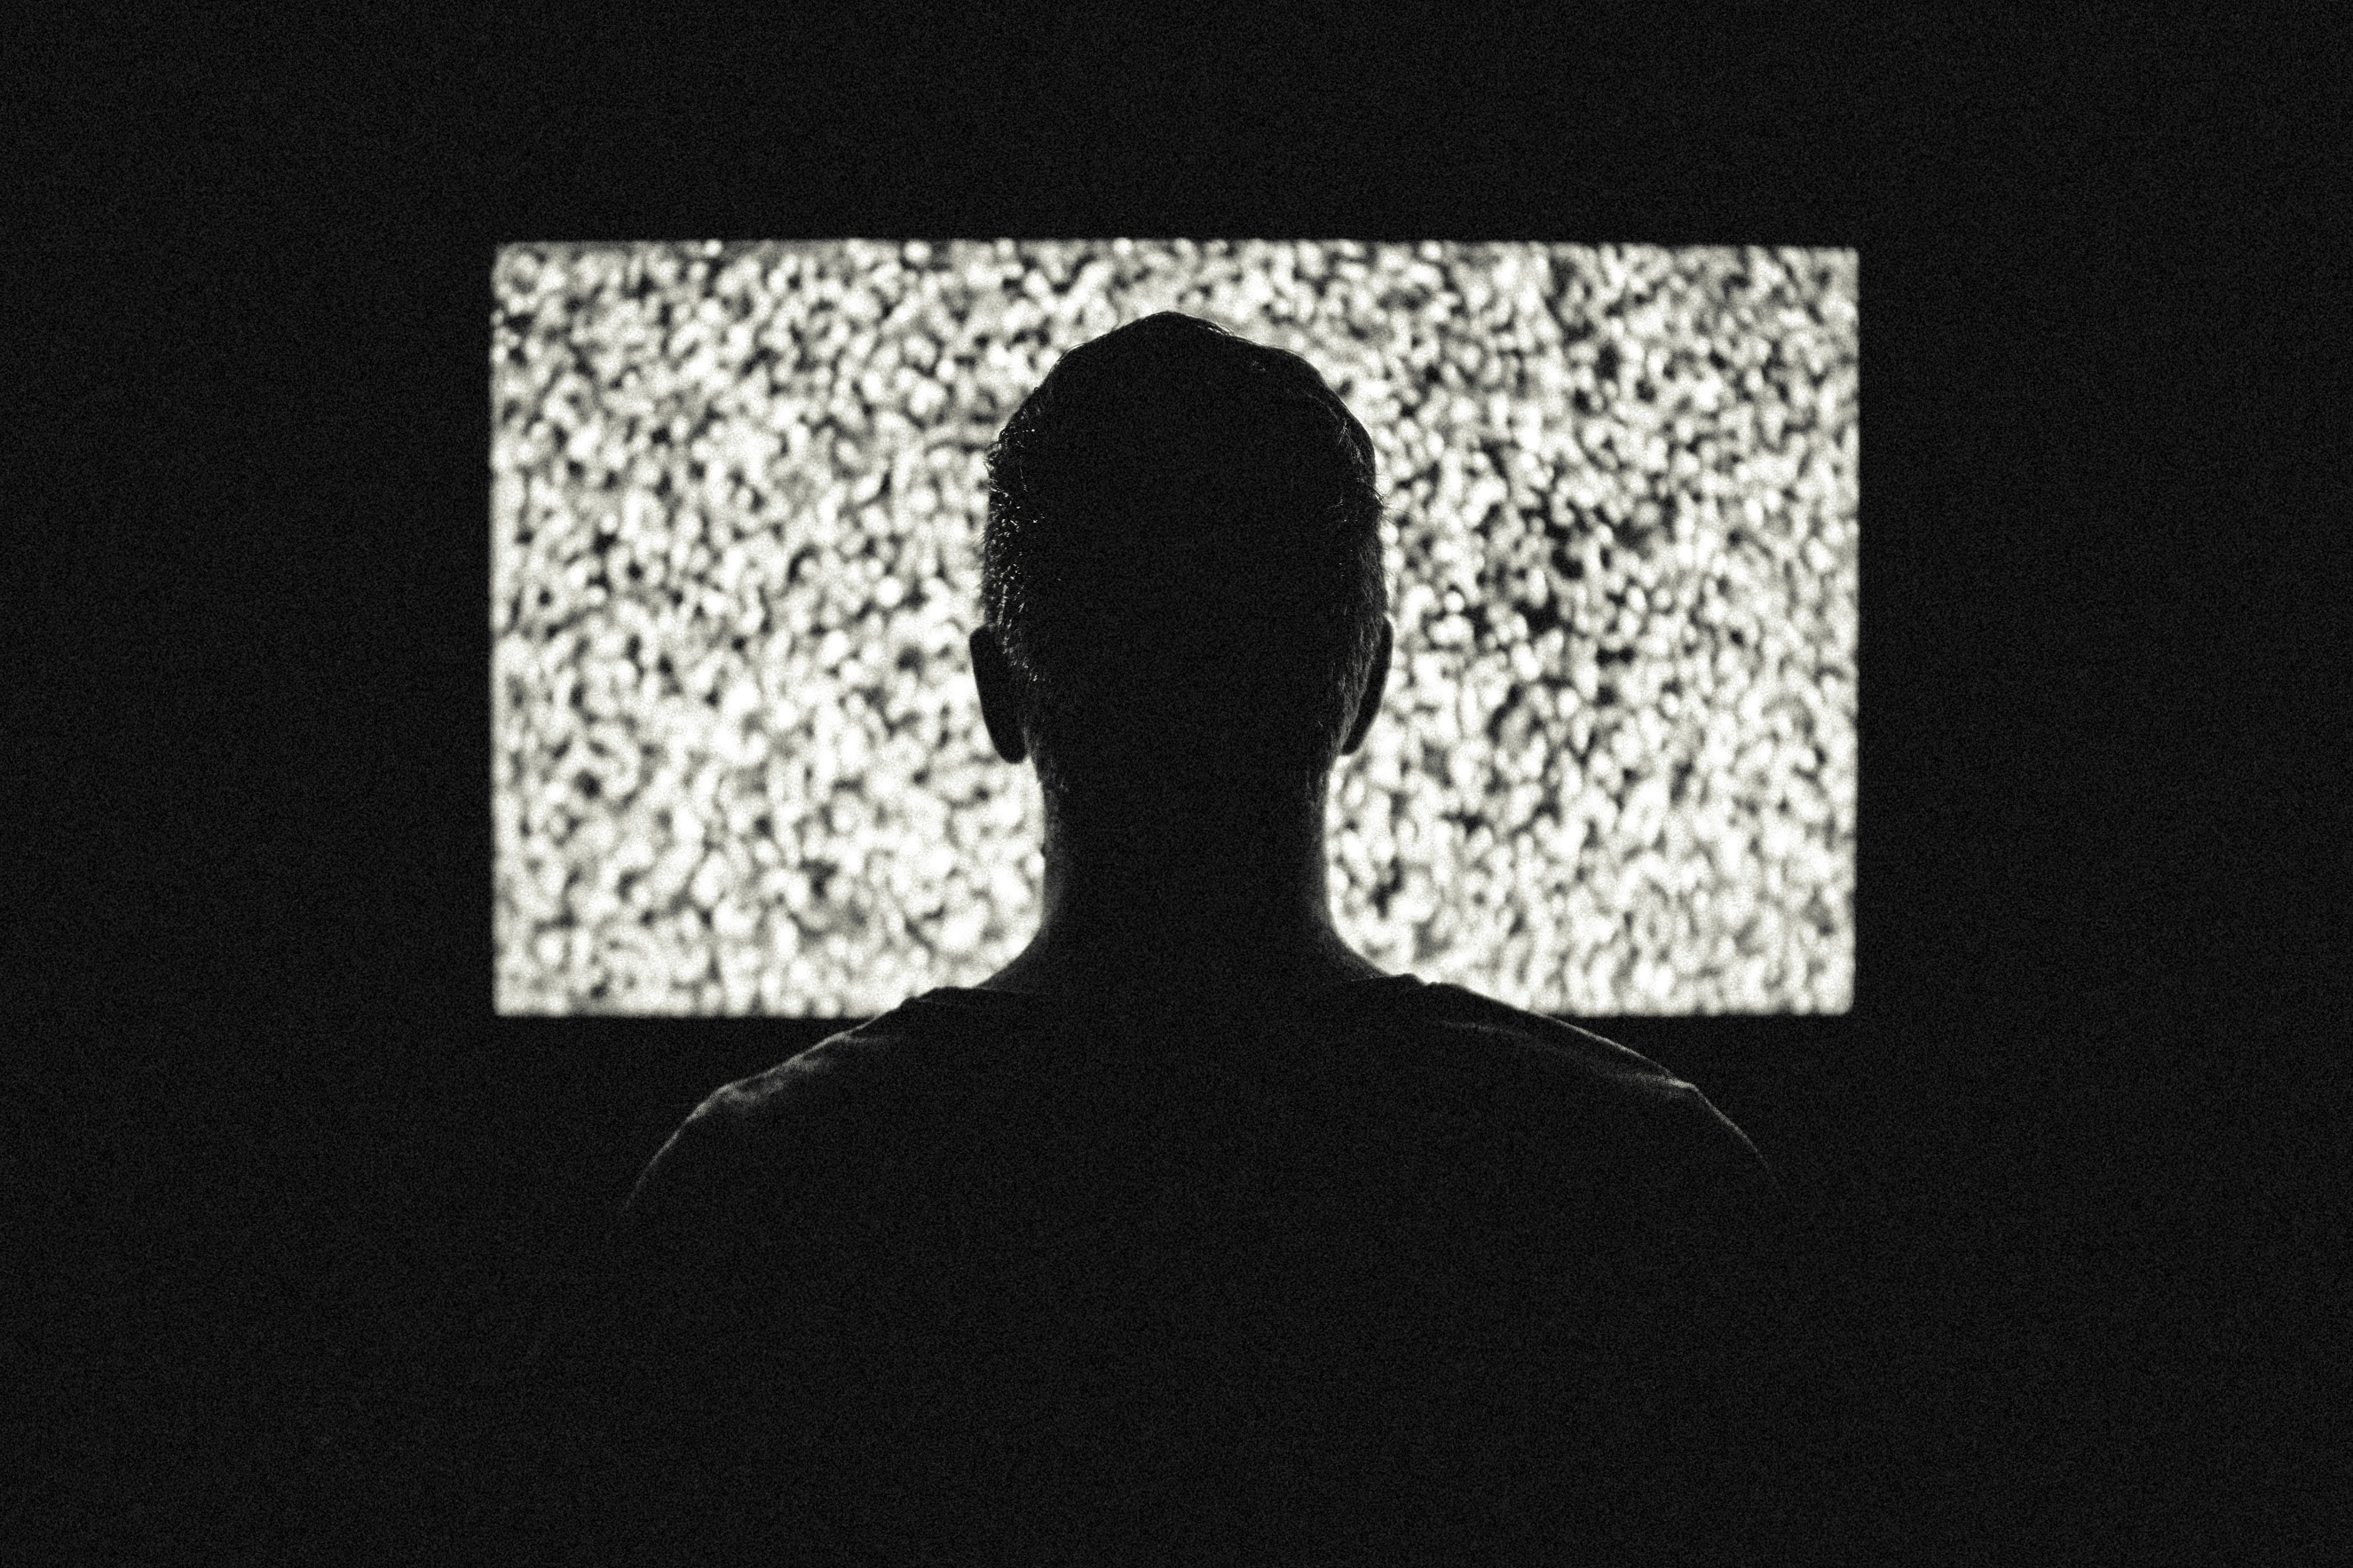 Silhouette of mans head staring at snow on a tv